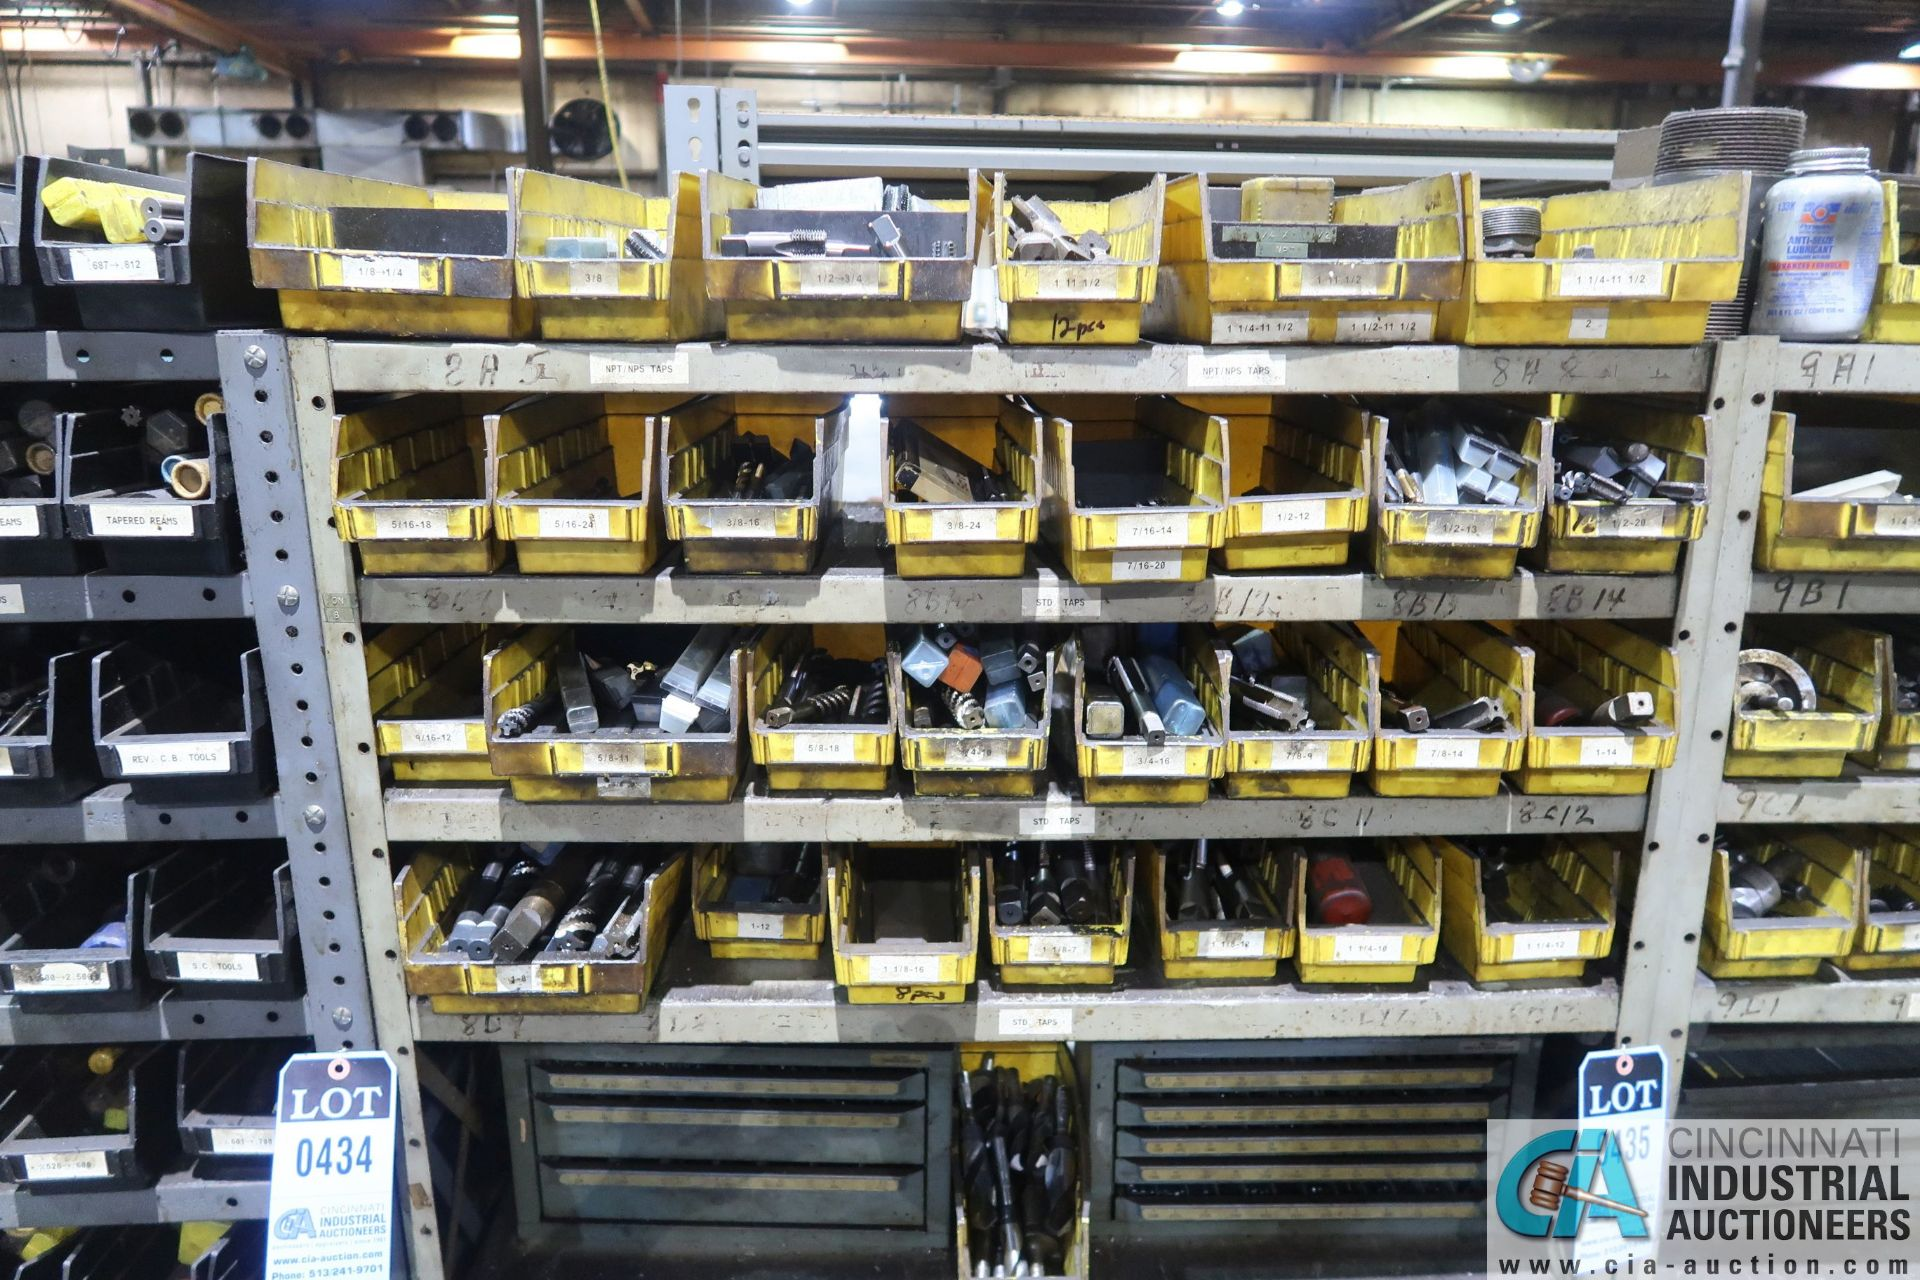 (LOT) HUGE ASSORTMENT TAPS AND DRILL INDEX CABINETS WITH SHELVING - Image 2 of 4